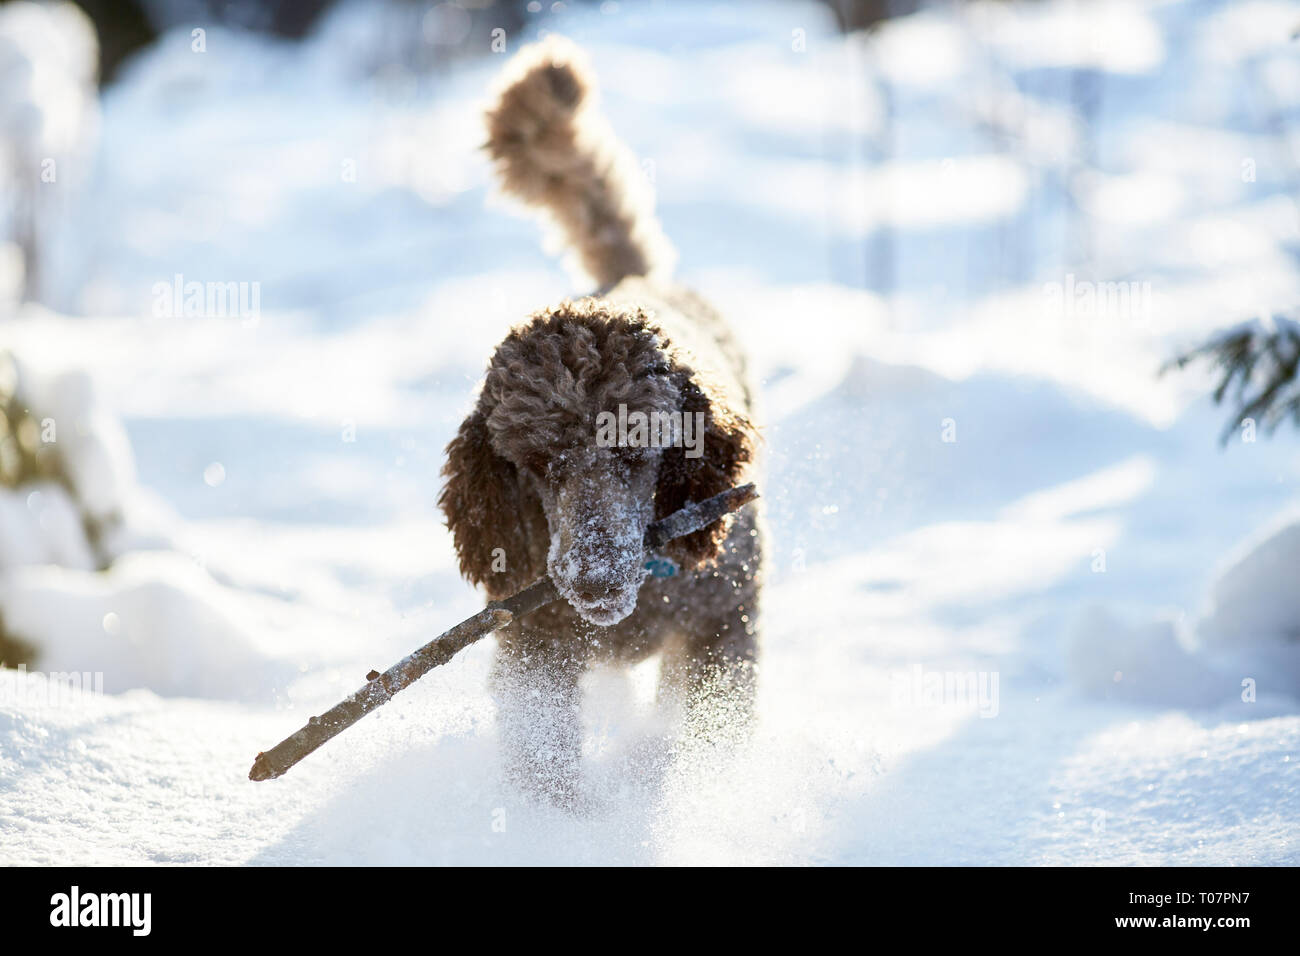 Standard poodle running and enjoying the snow on a beautiful winter day. Playful dog in action with a toy on a snowy field in Finland. Active lifestyl - Stock Image